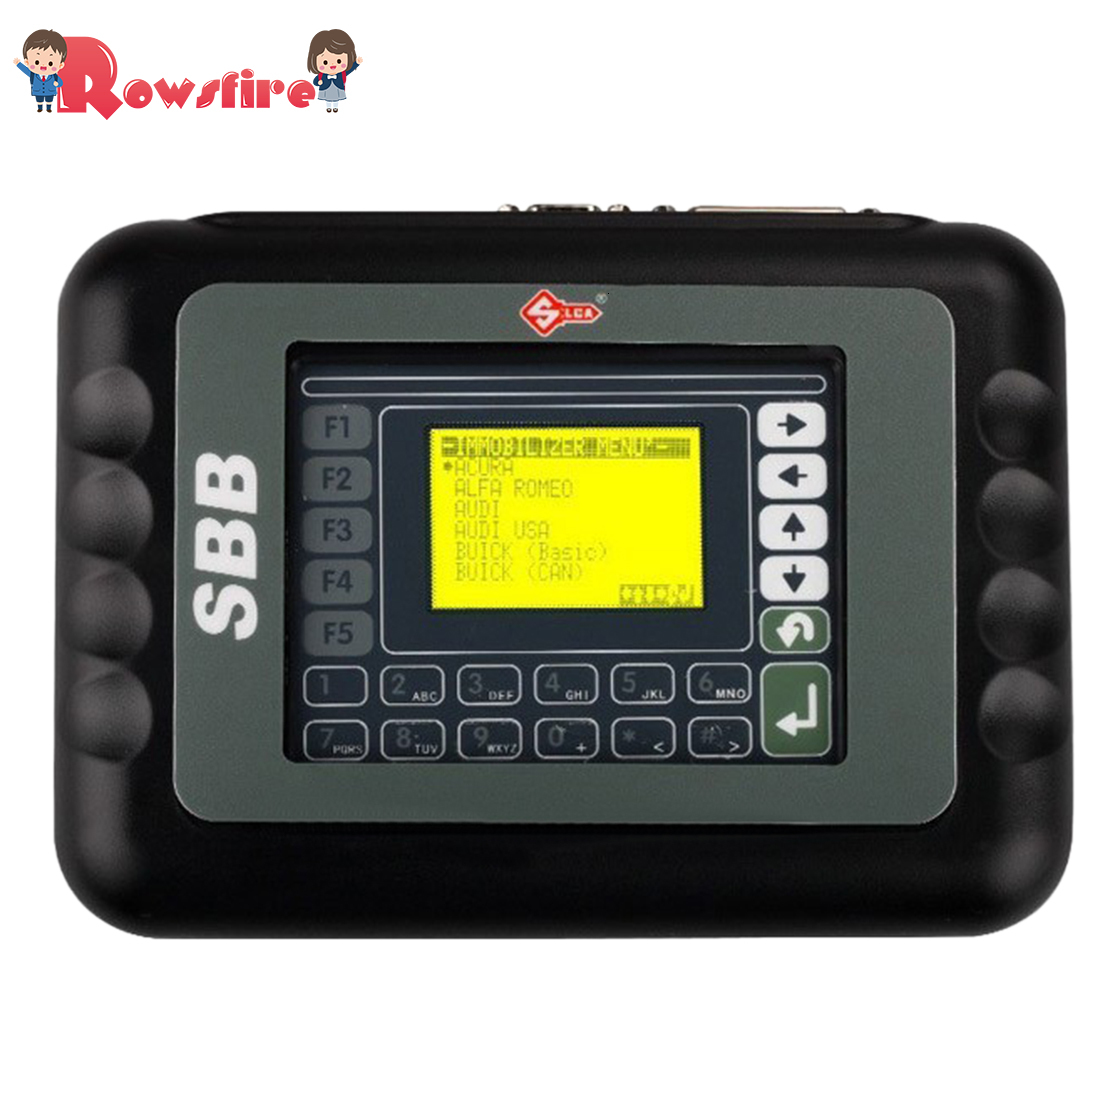 SBB V33.02 Key Programmer Immobilizer Tool For Car - EU Plug Black